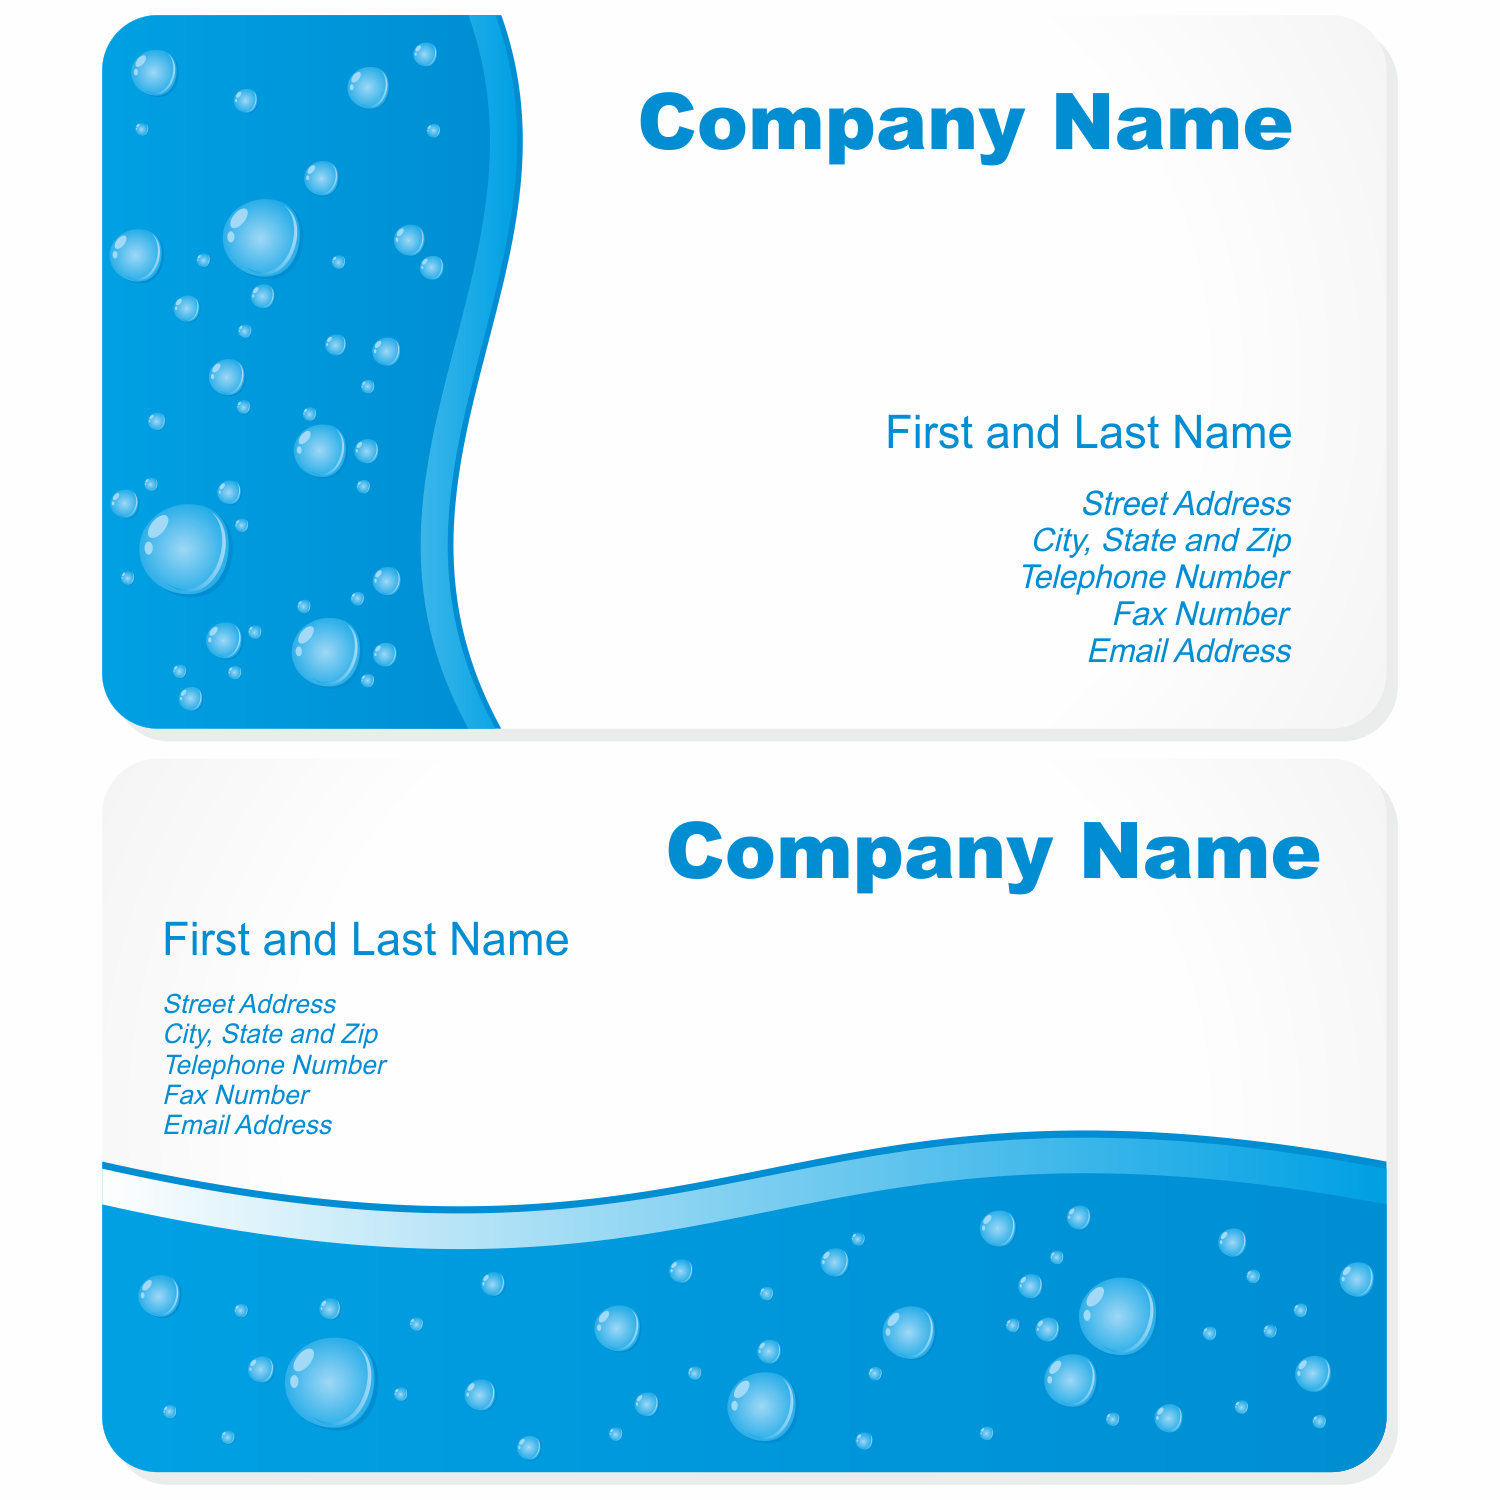 Free business card template online business card sample free business card template online fbccfo Gallery